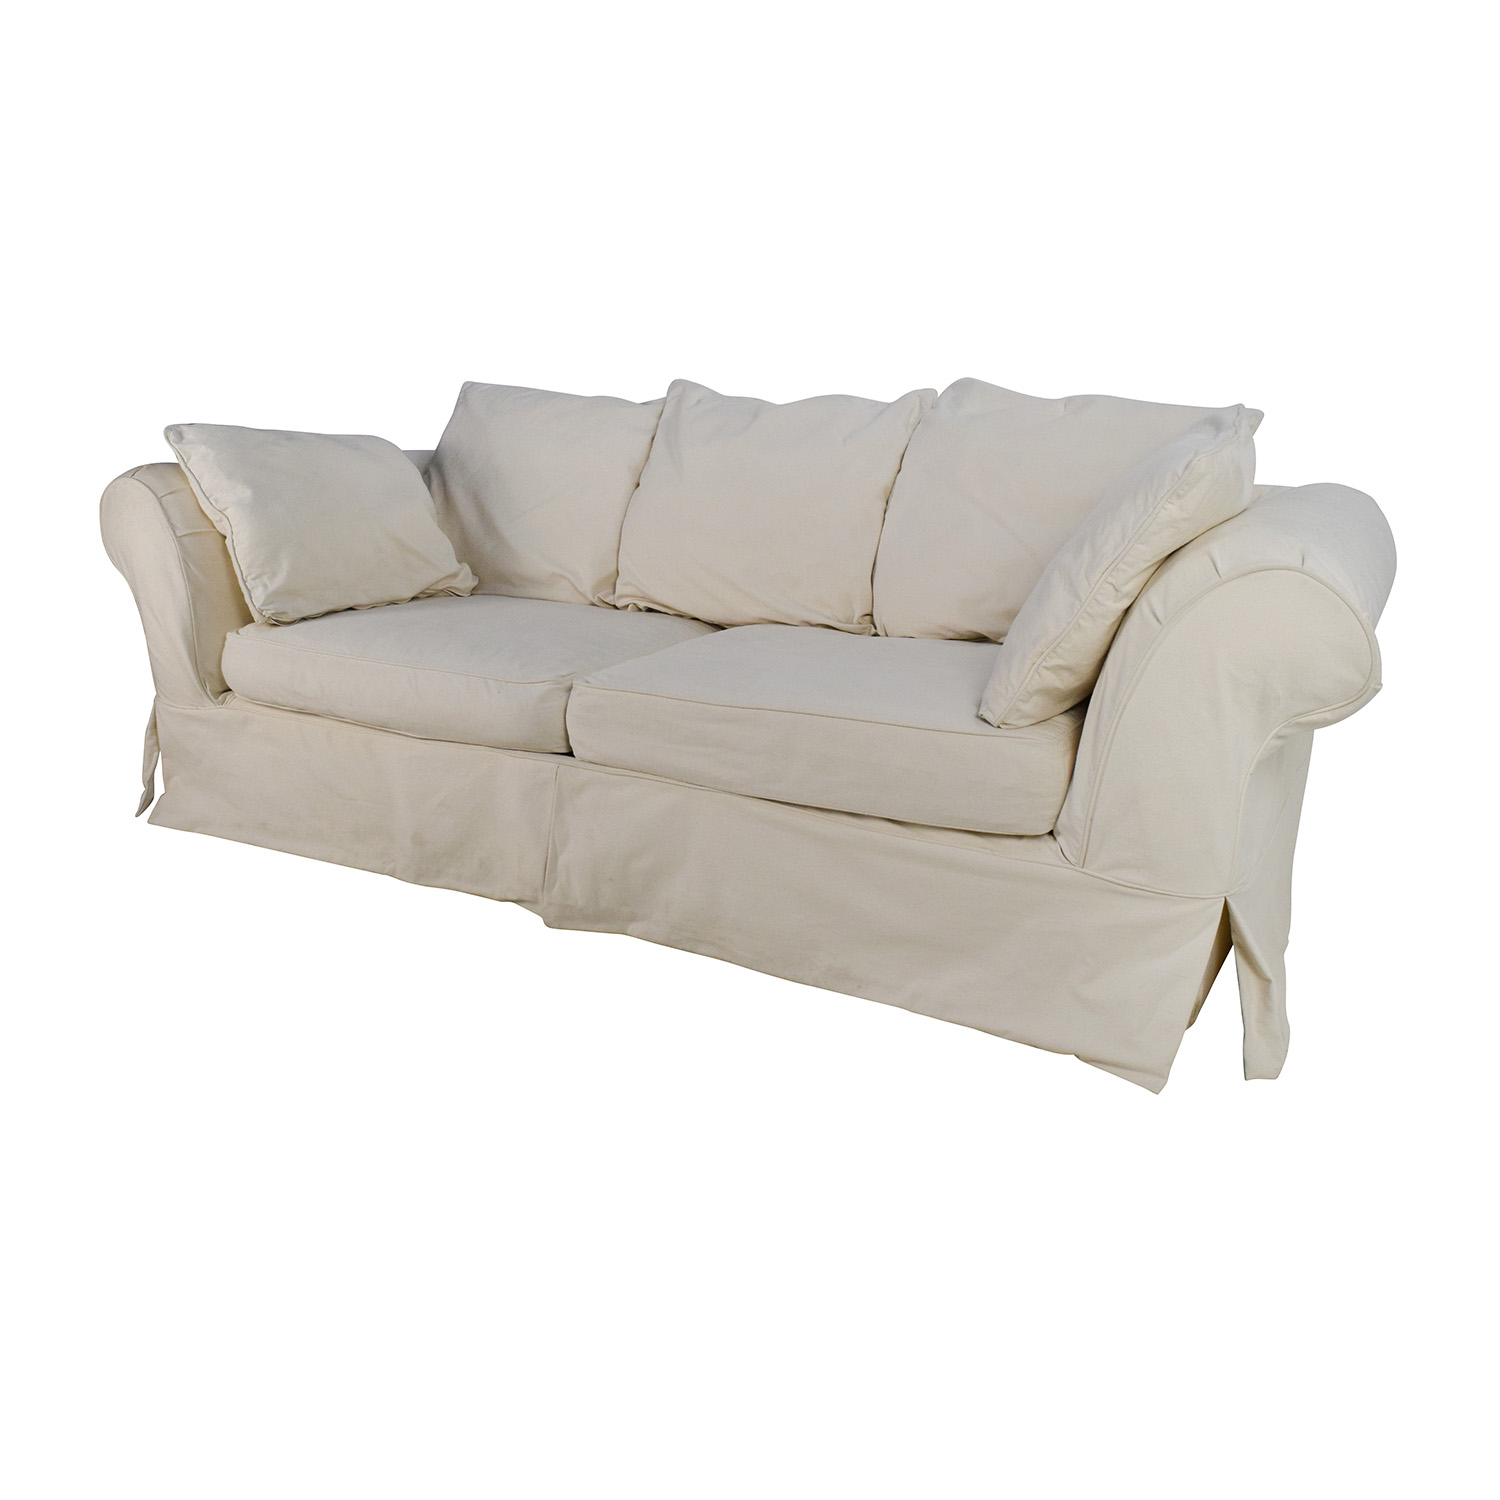 89 off jennifer convertibles jennifer convertibles for Sectional sofa jennifer convertible